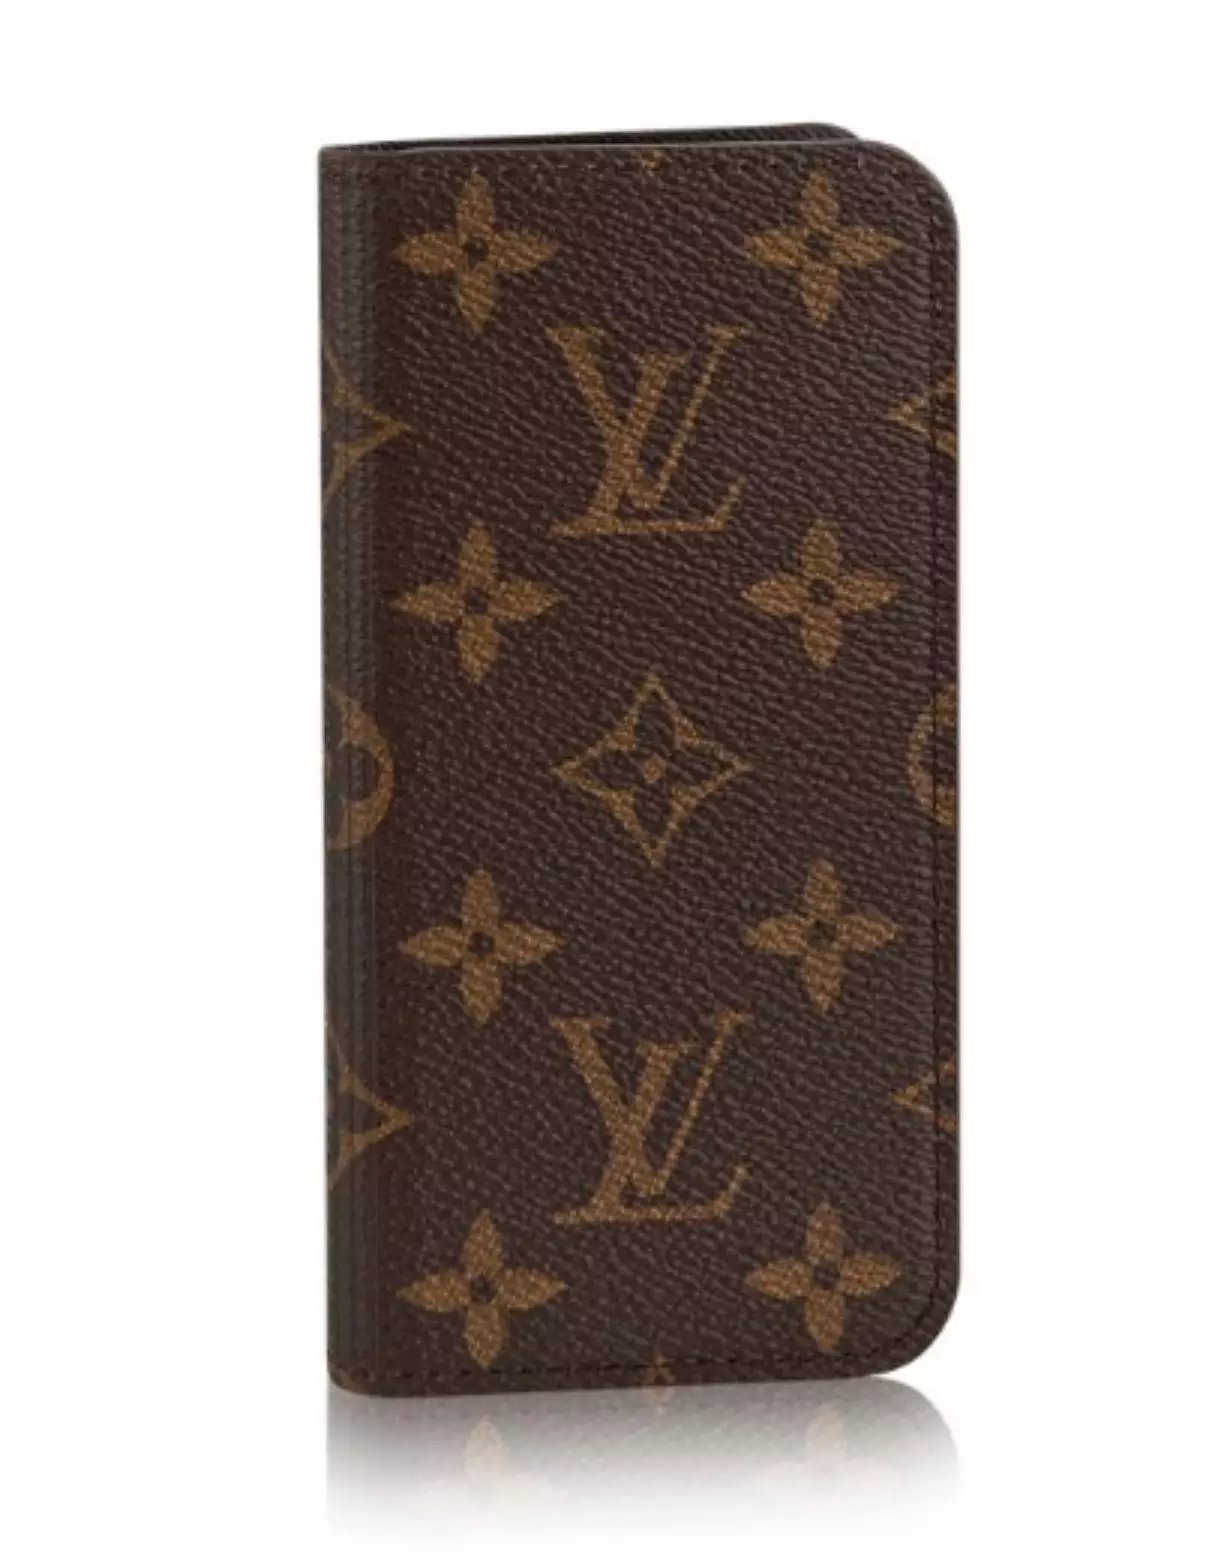 where can i get iphone 8 cases apple iphone 8 cases and covers Louis Vuitton iphone 8 case iphone 8 caes iphone 6 8 iphone6 phone cases mobile phone case brands best iphone cases 6 cases for phones